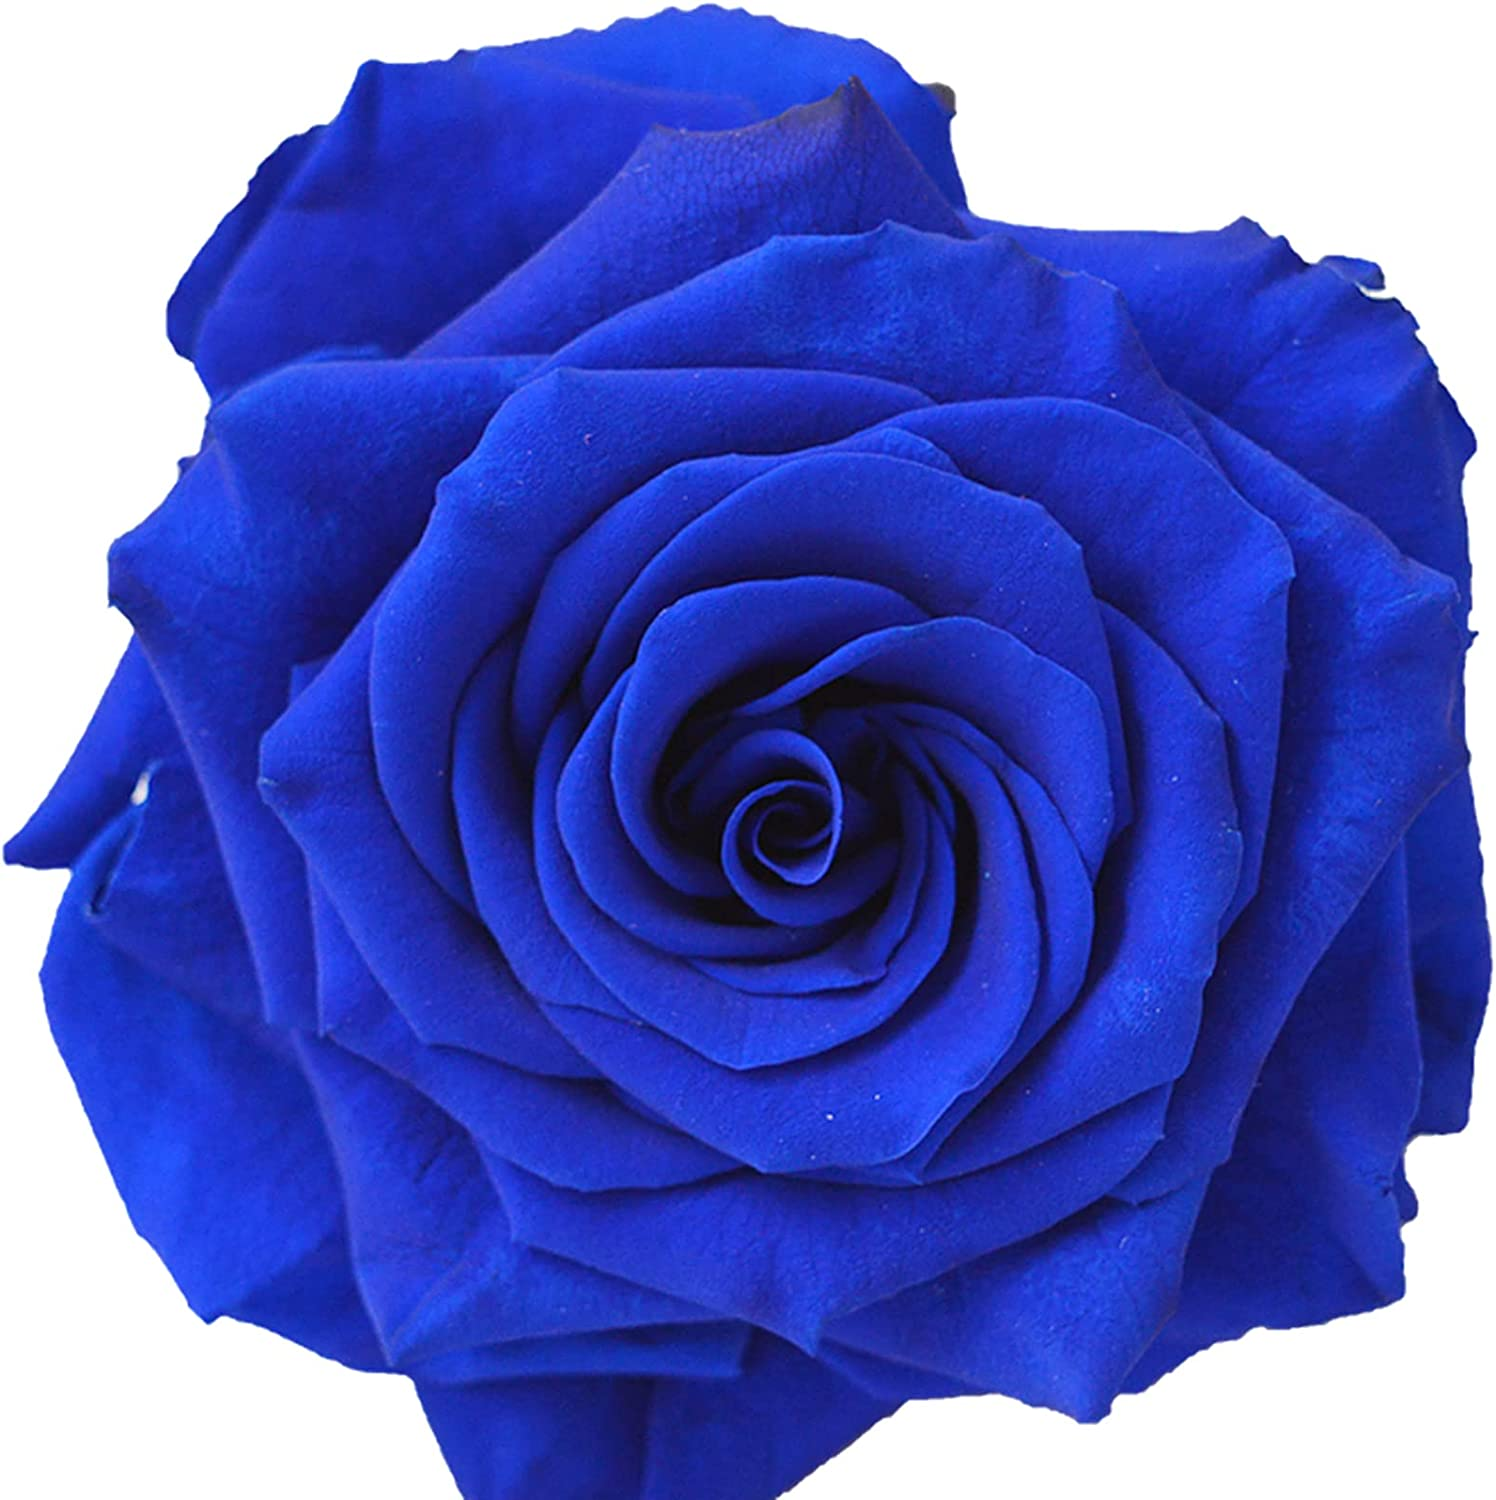 Charming Style Exotic Ranking TOP10 Beautiful Cut Rose Cheap sale Gift Surprise S Flowers